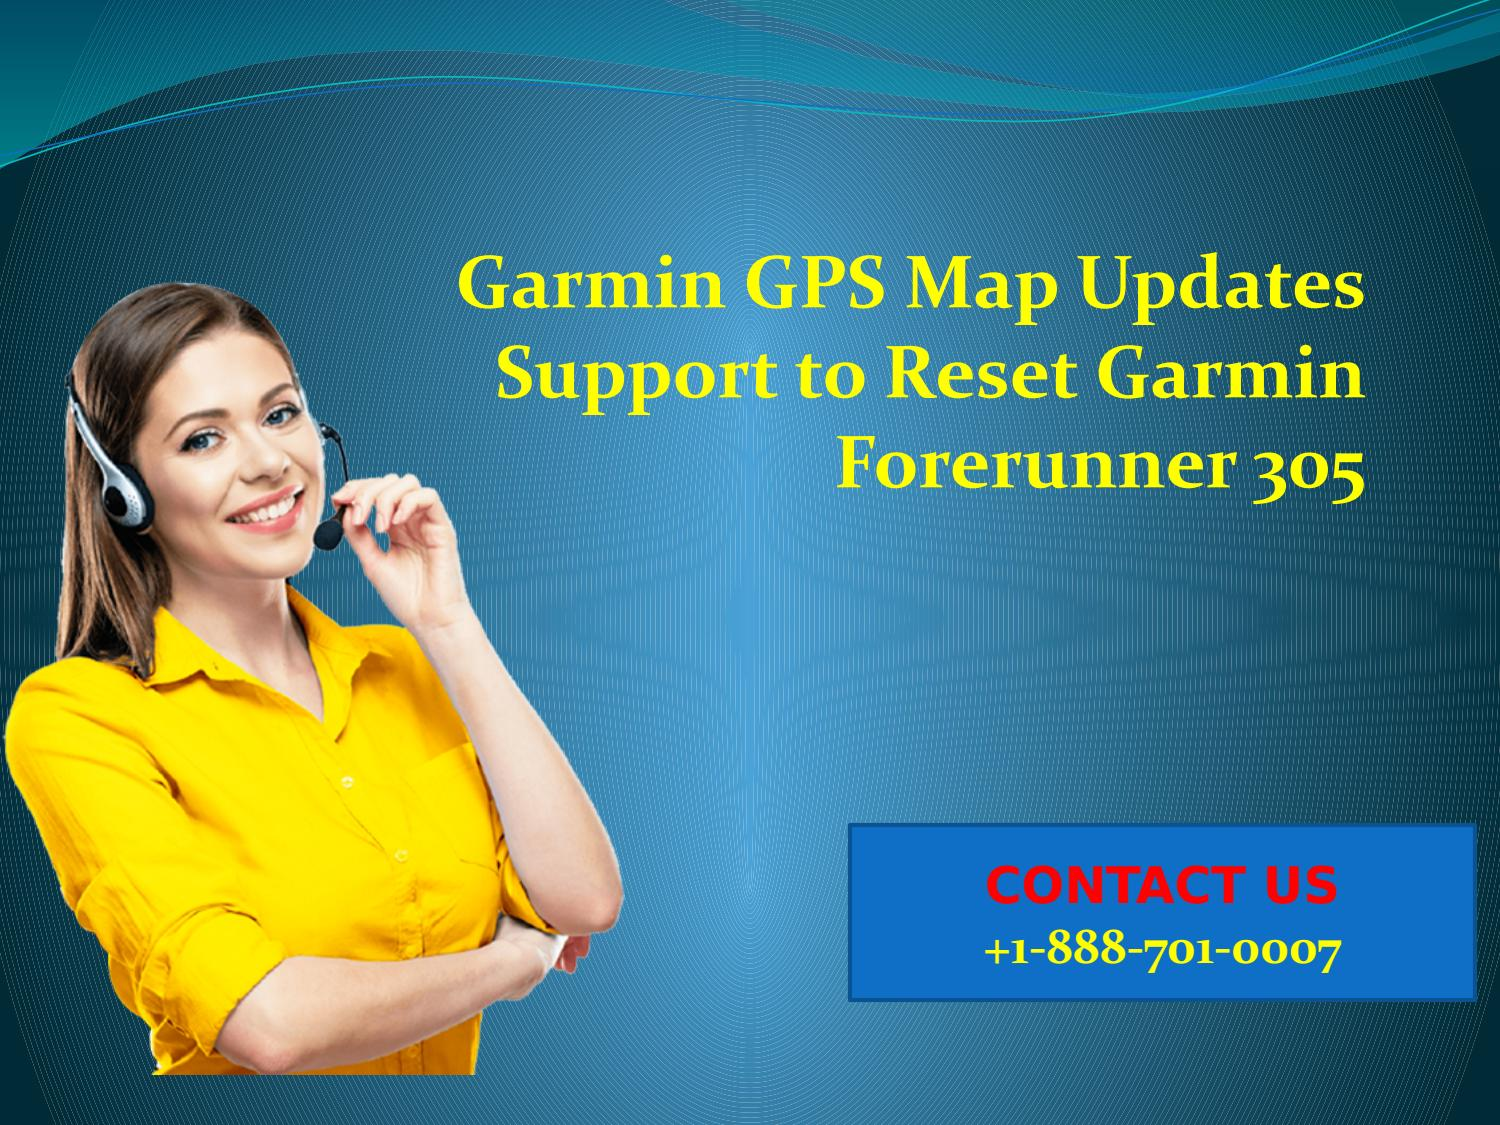 Garmin GPS map updates support to reset Garmin Forerunner